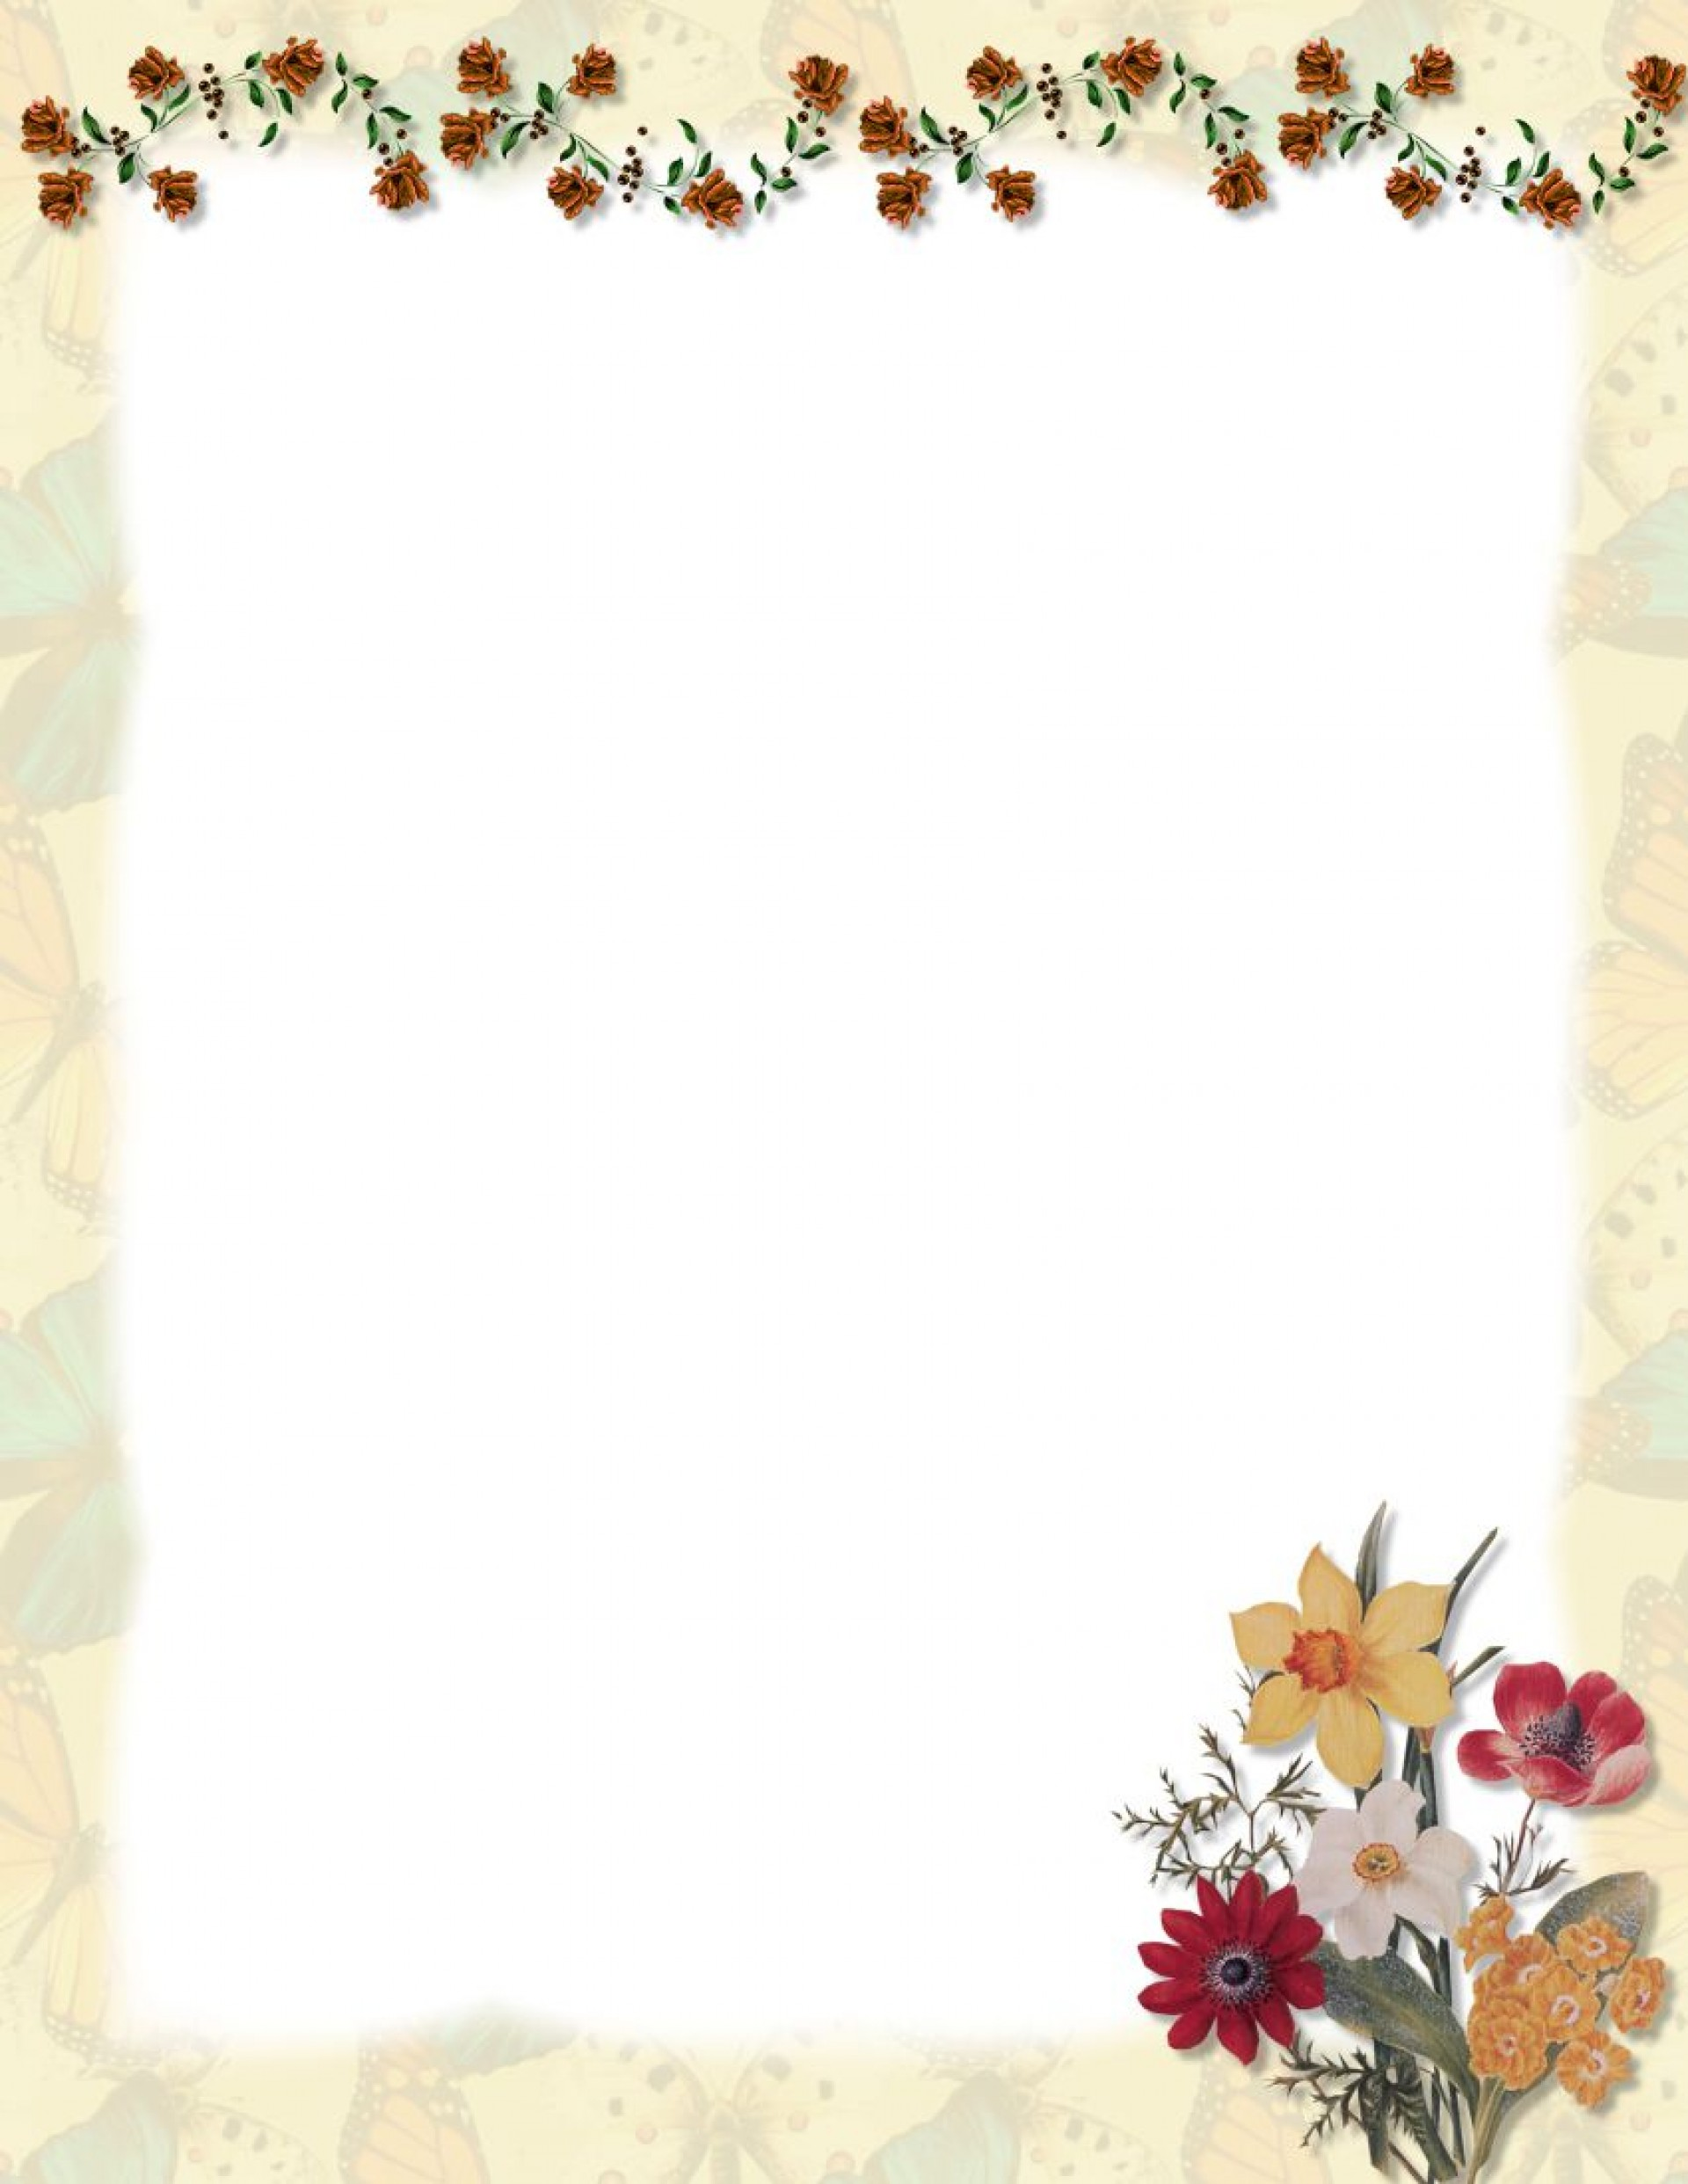 006 Stunning Stationary Template For Word Example  Lined Stationery Free Download1920